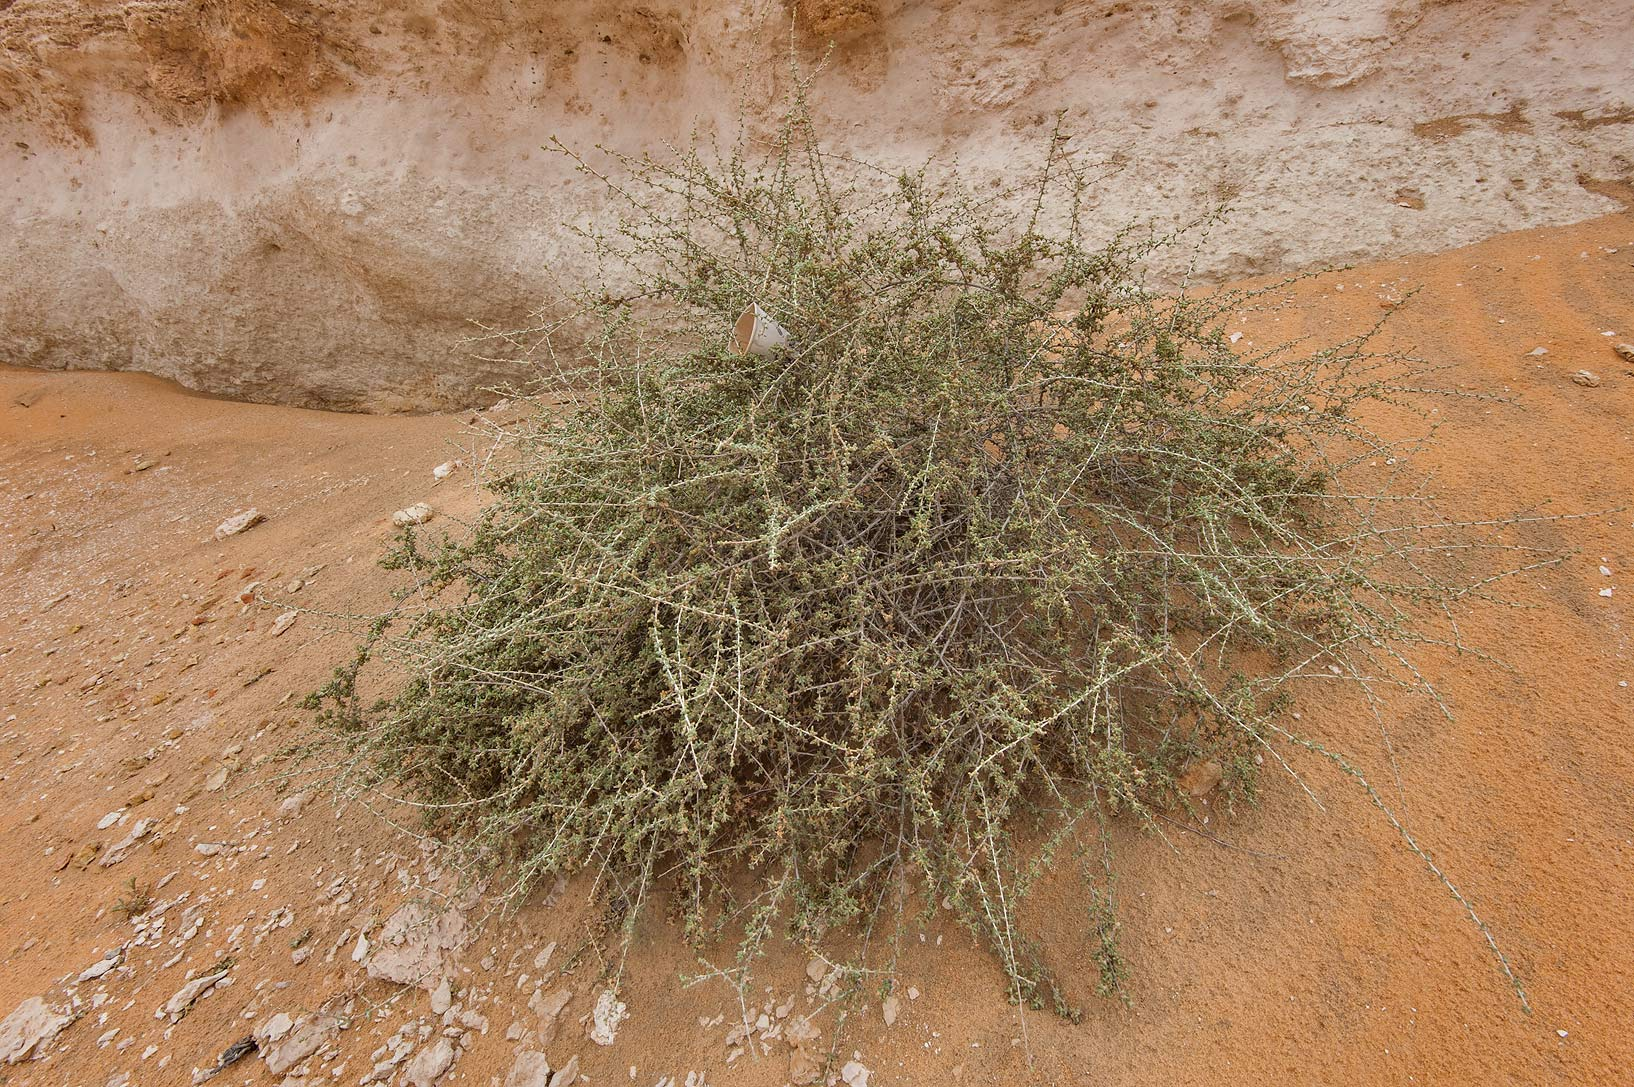 Bush of Traganum nudatum (local name dumran...Reserve near Abu Samra. Southern Qatar